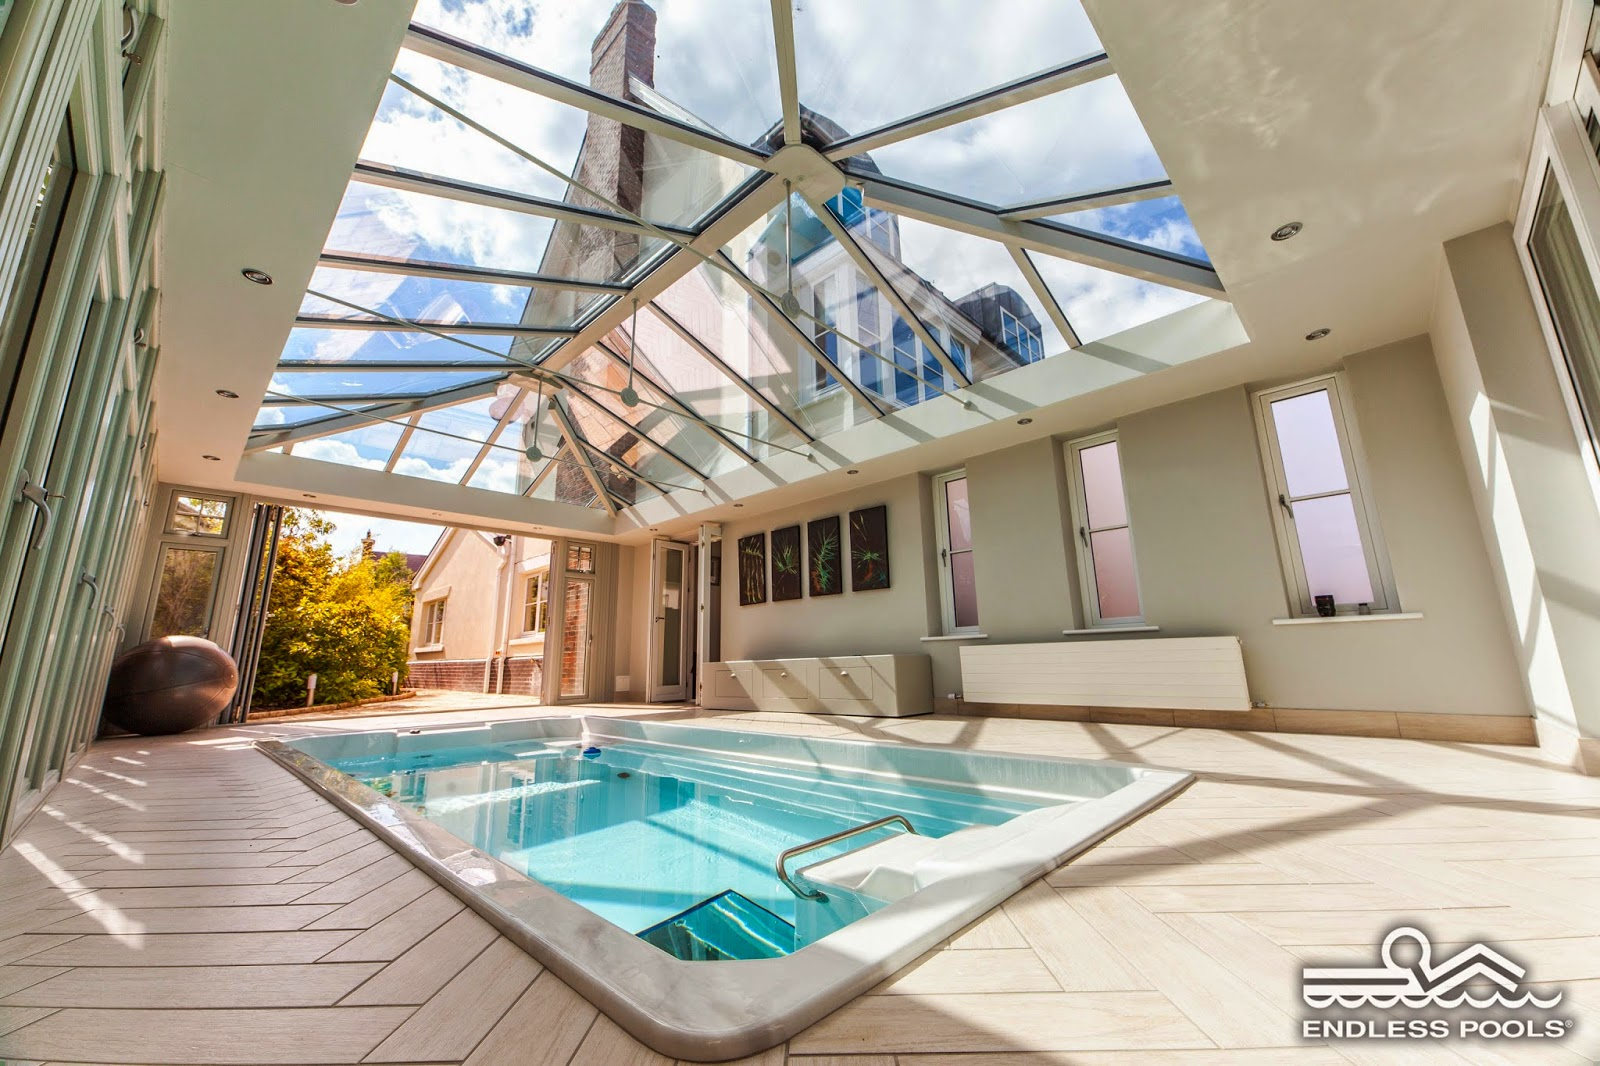 A 17' Endless Pool Swim Spa with plenty of natural light and doors that open out to the courtyard.